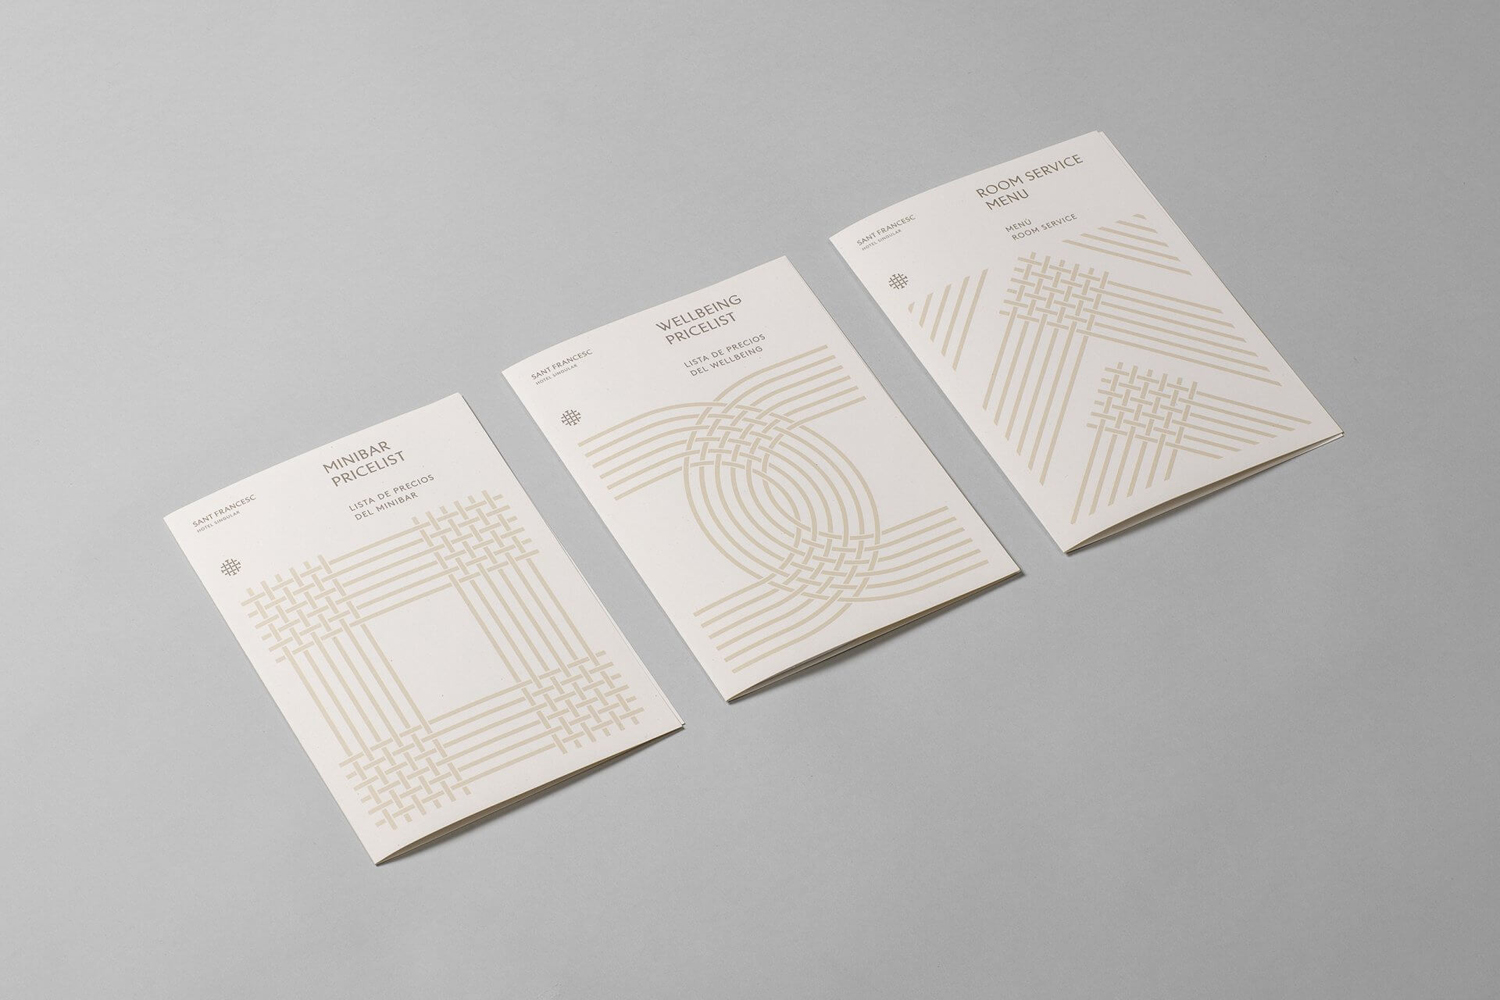 Brand identity and pricelists designed by Mucho for Spanish 5-star hotel Sant Francesc.